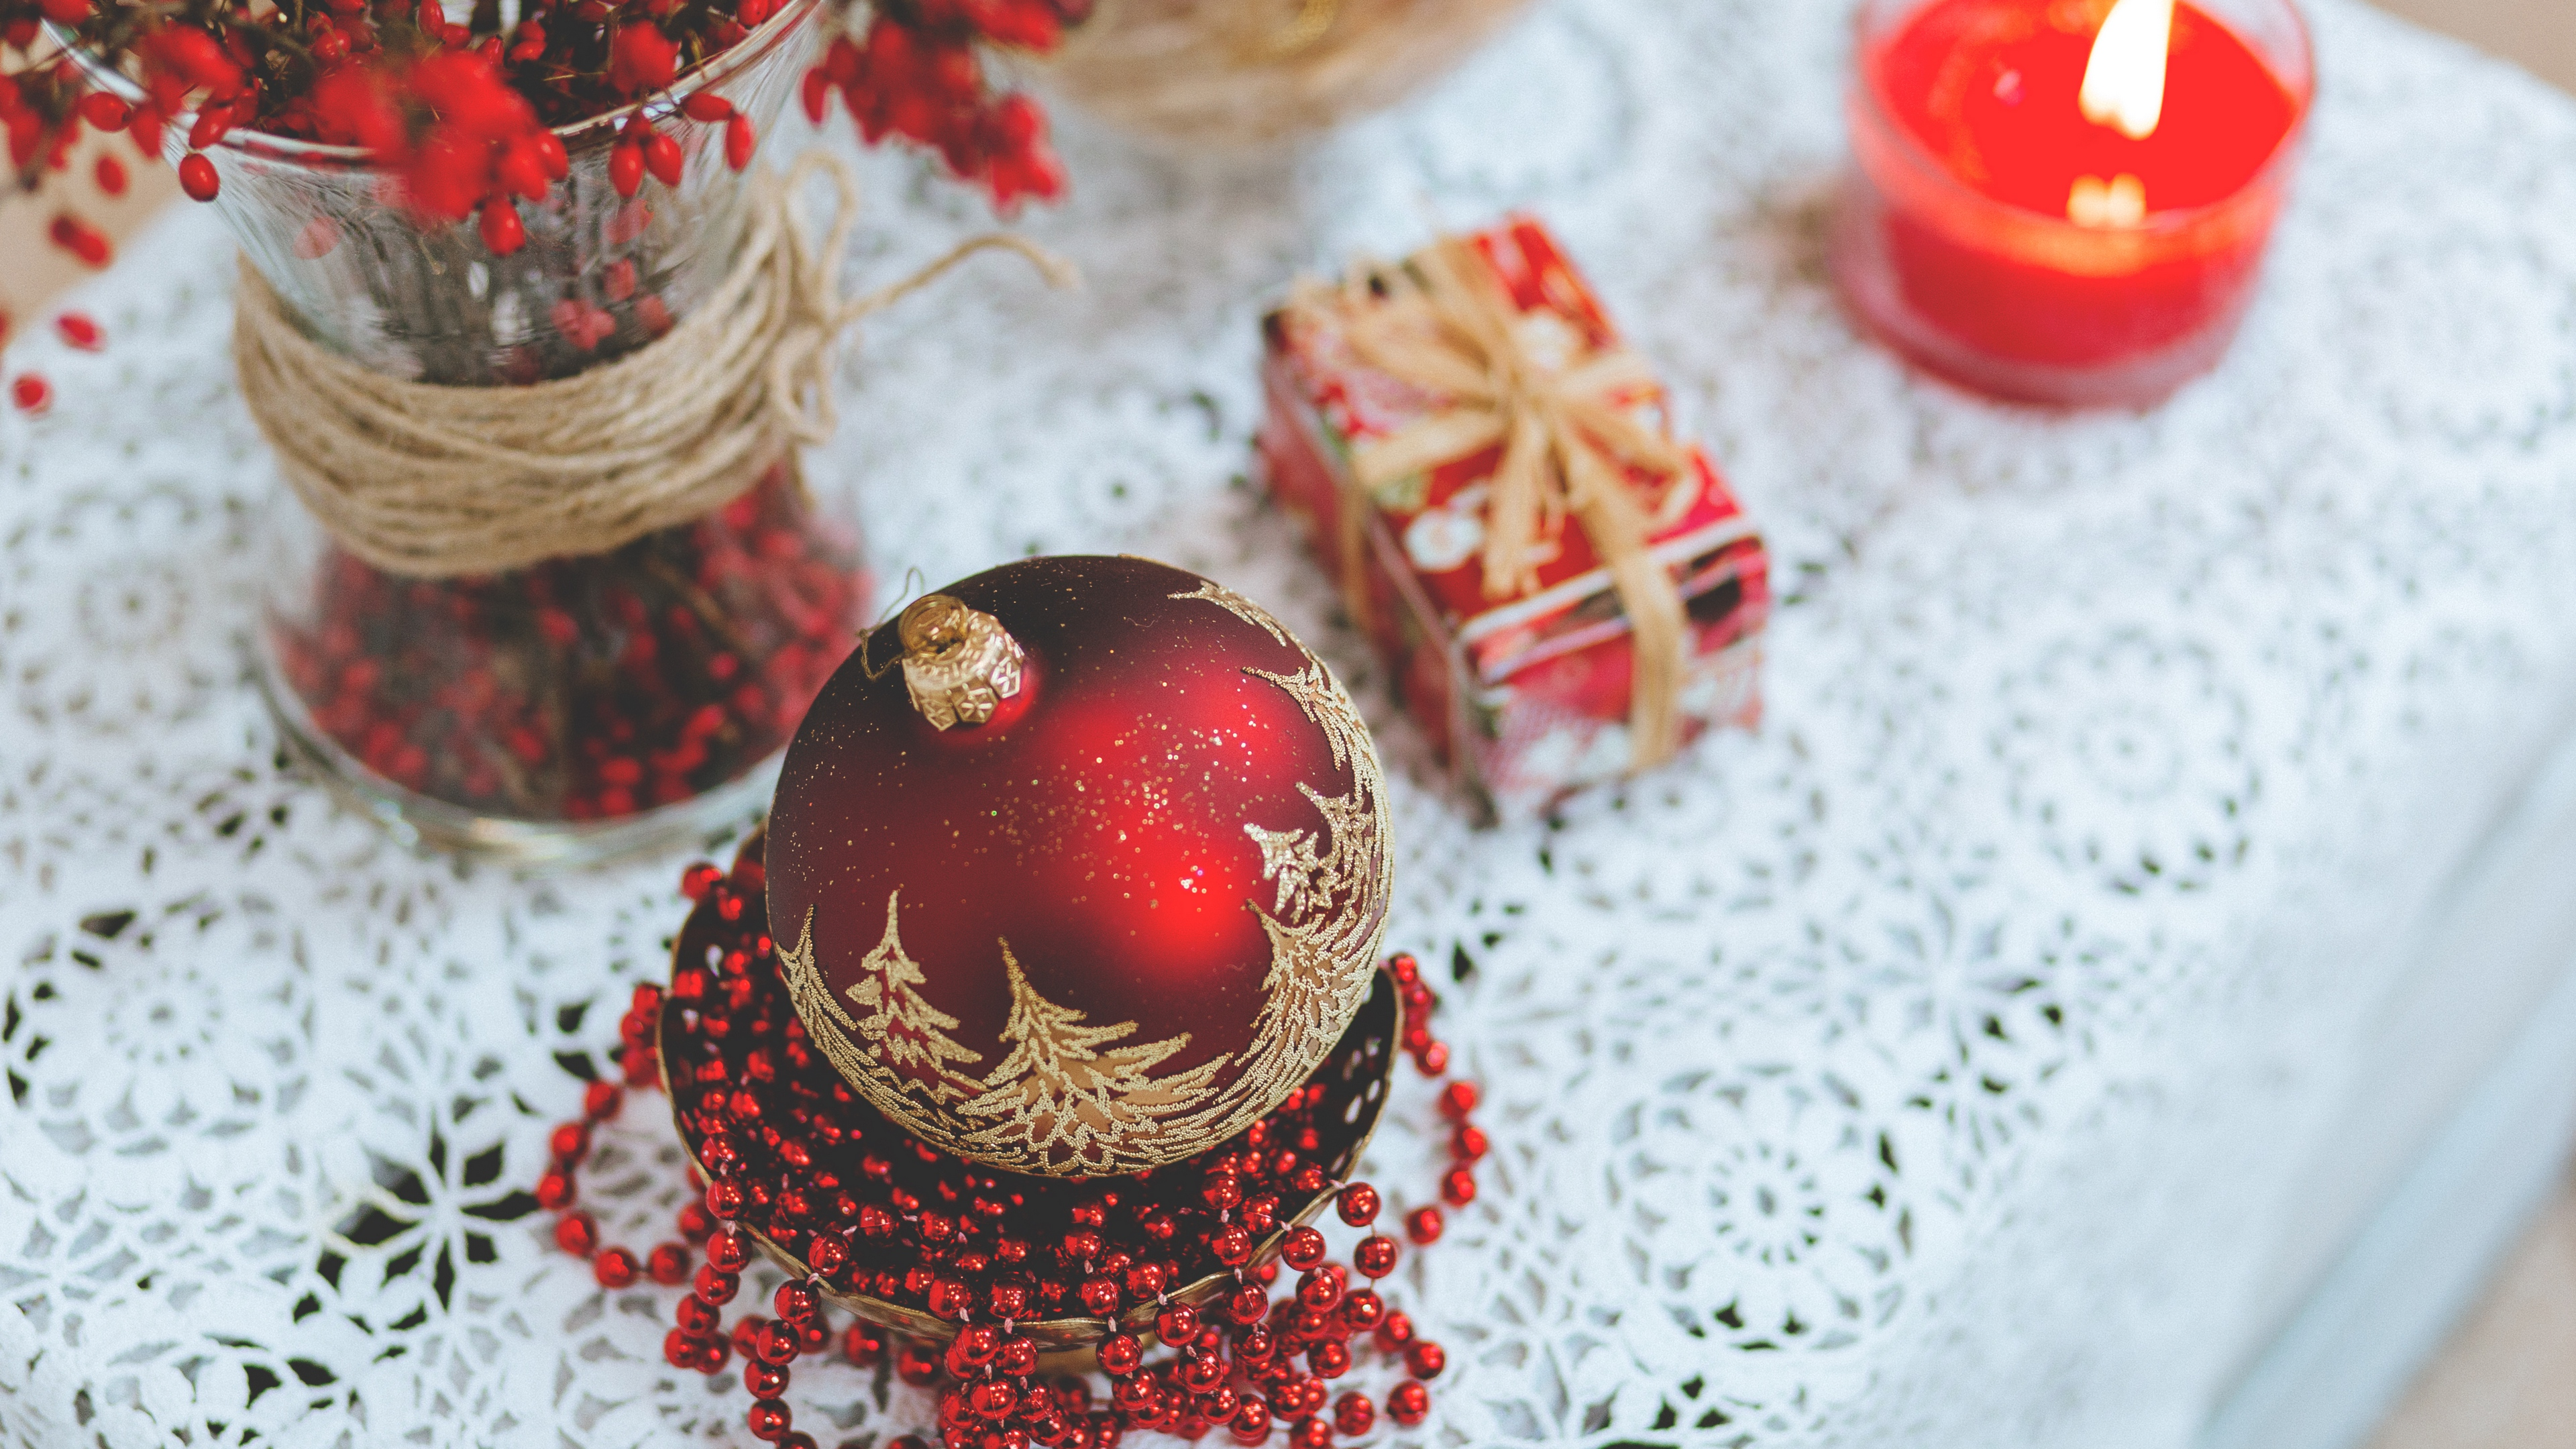 christmas decorations ball candle gift 4k 1538344548 - christmas decorations, ball, candle, gift 4k - christmas decorations, candle, Ball